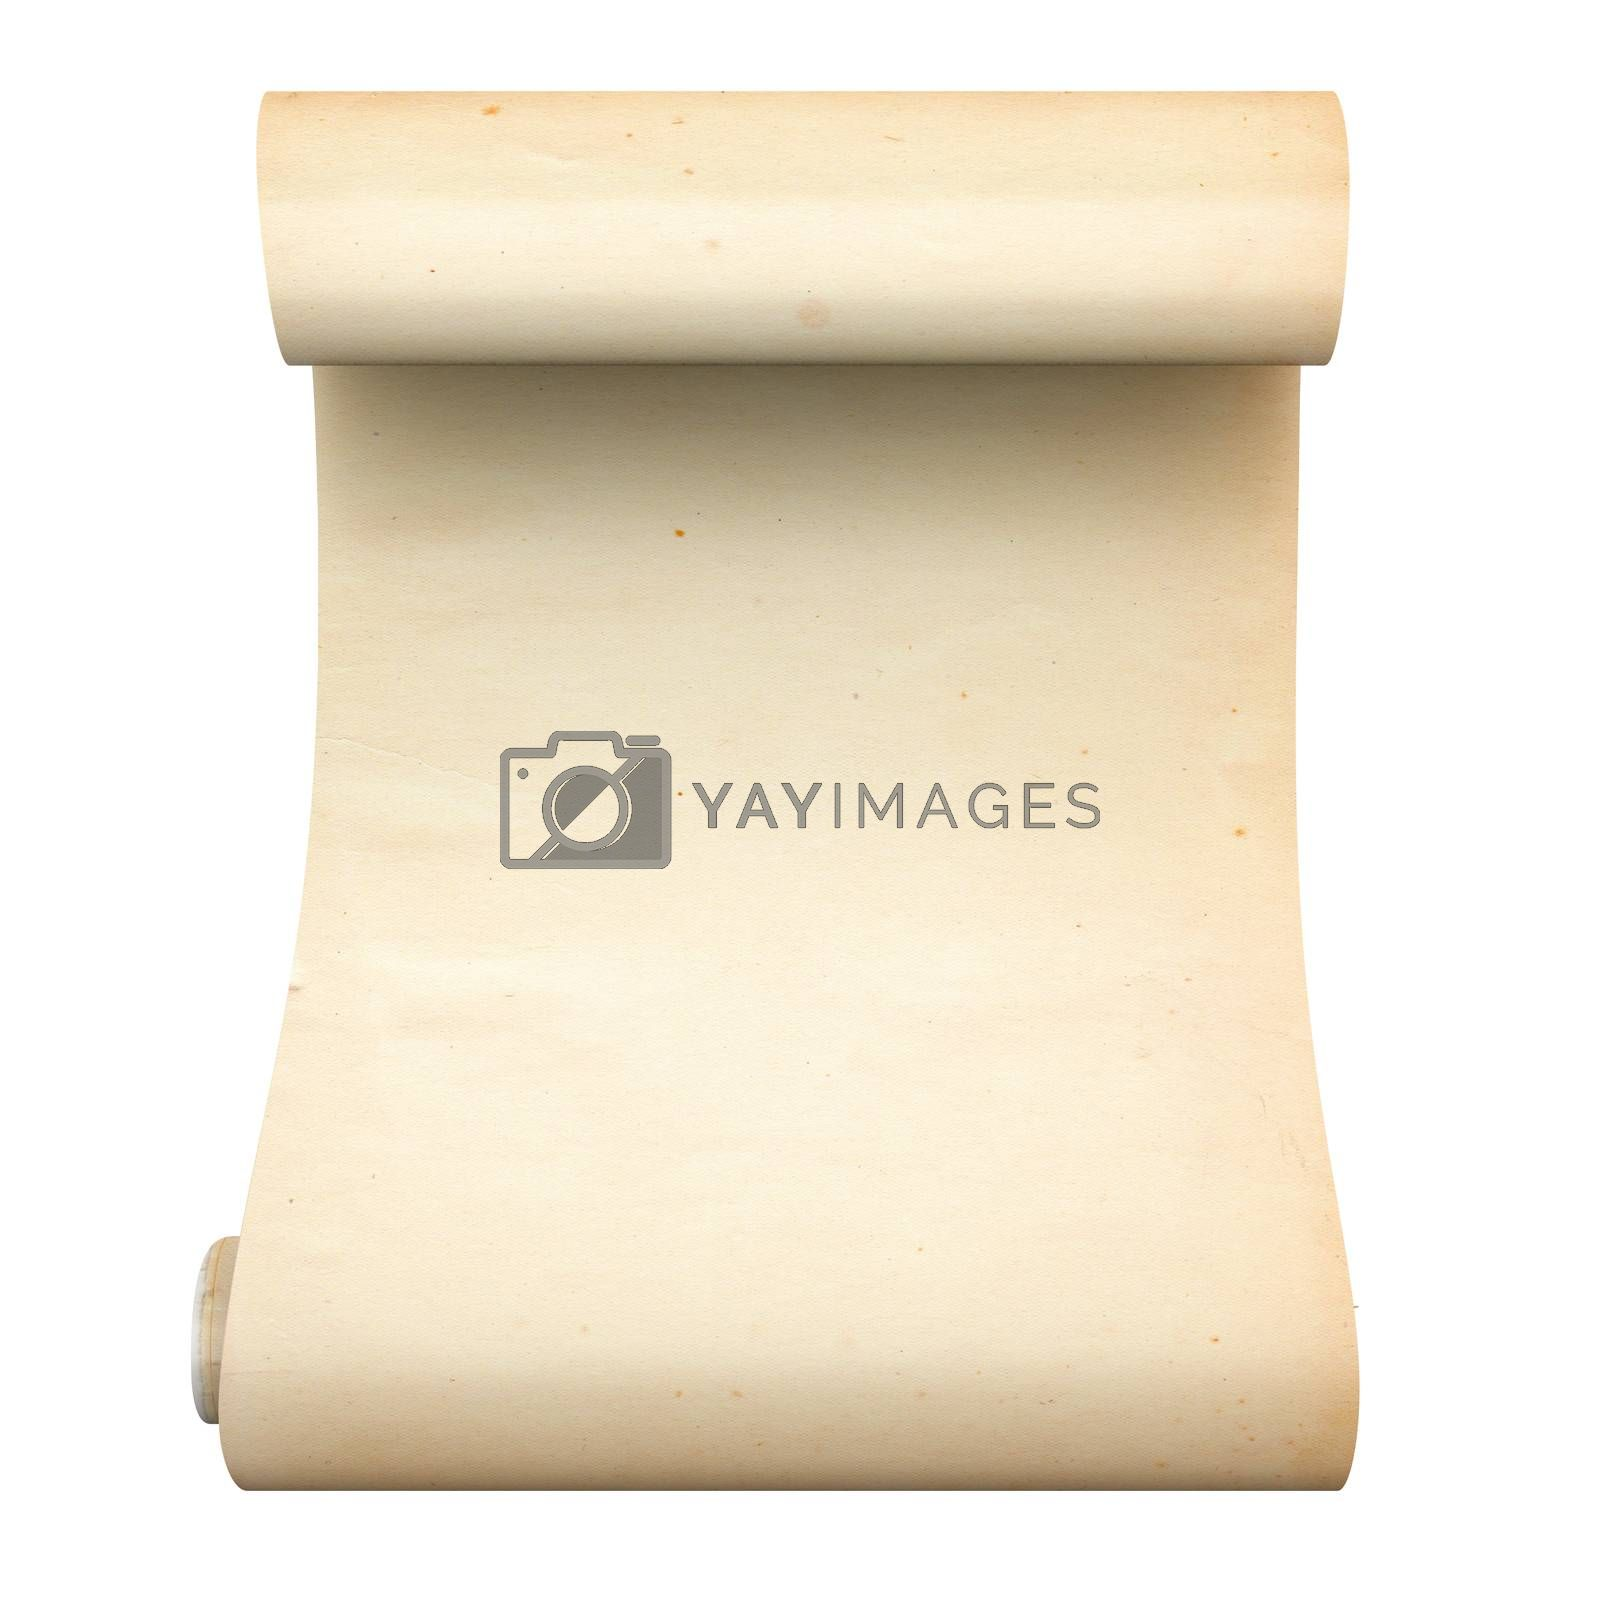 An ancient scroll. 3D rendered Illustration. Isolated on white.